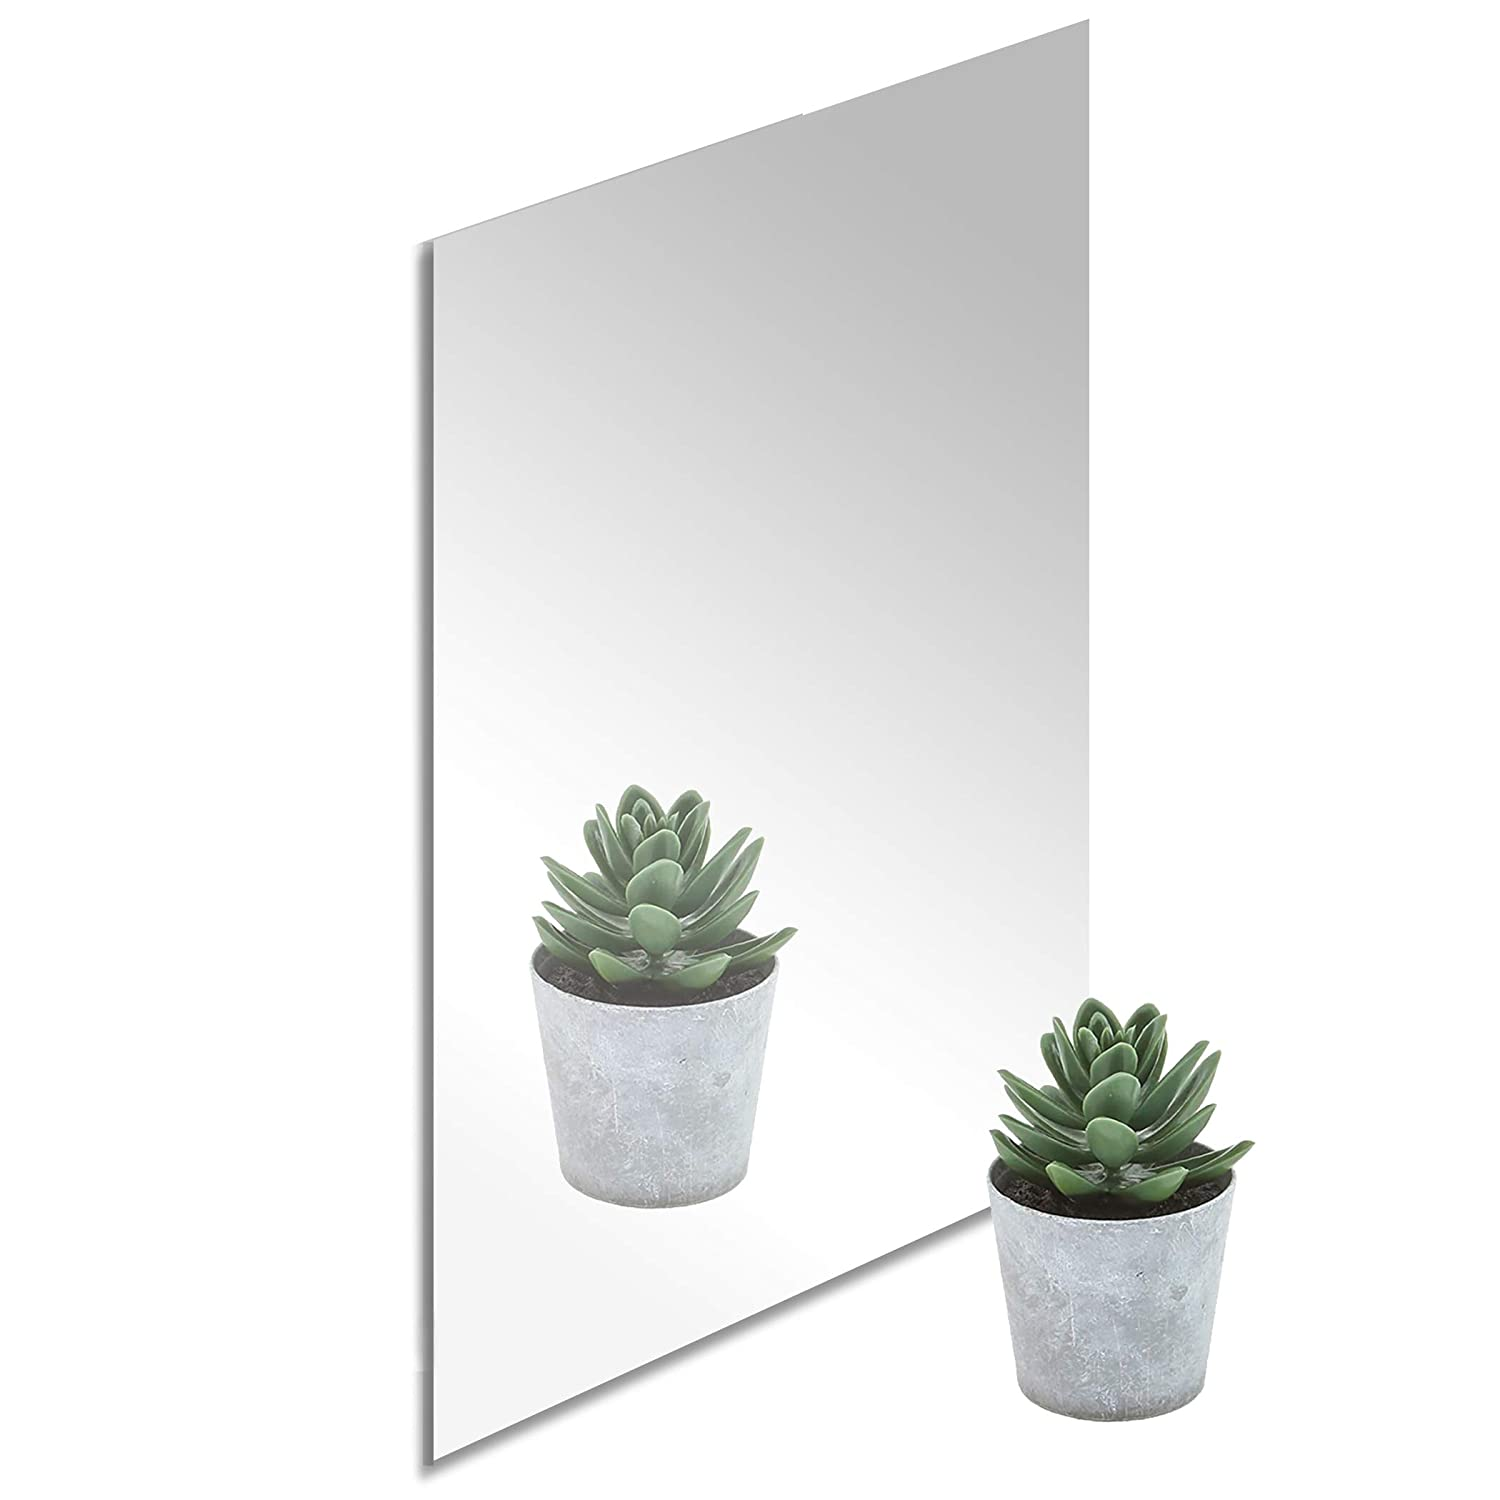 12'' x 24'' Special price for a limited time Silver Mirrored 1 – Acrylic Selling rankings